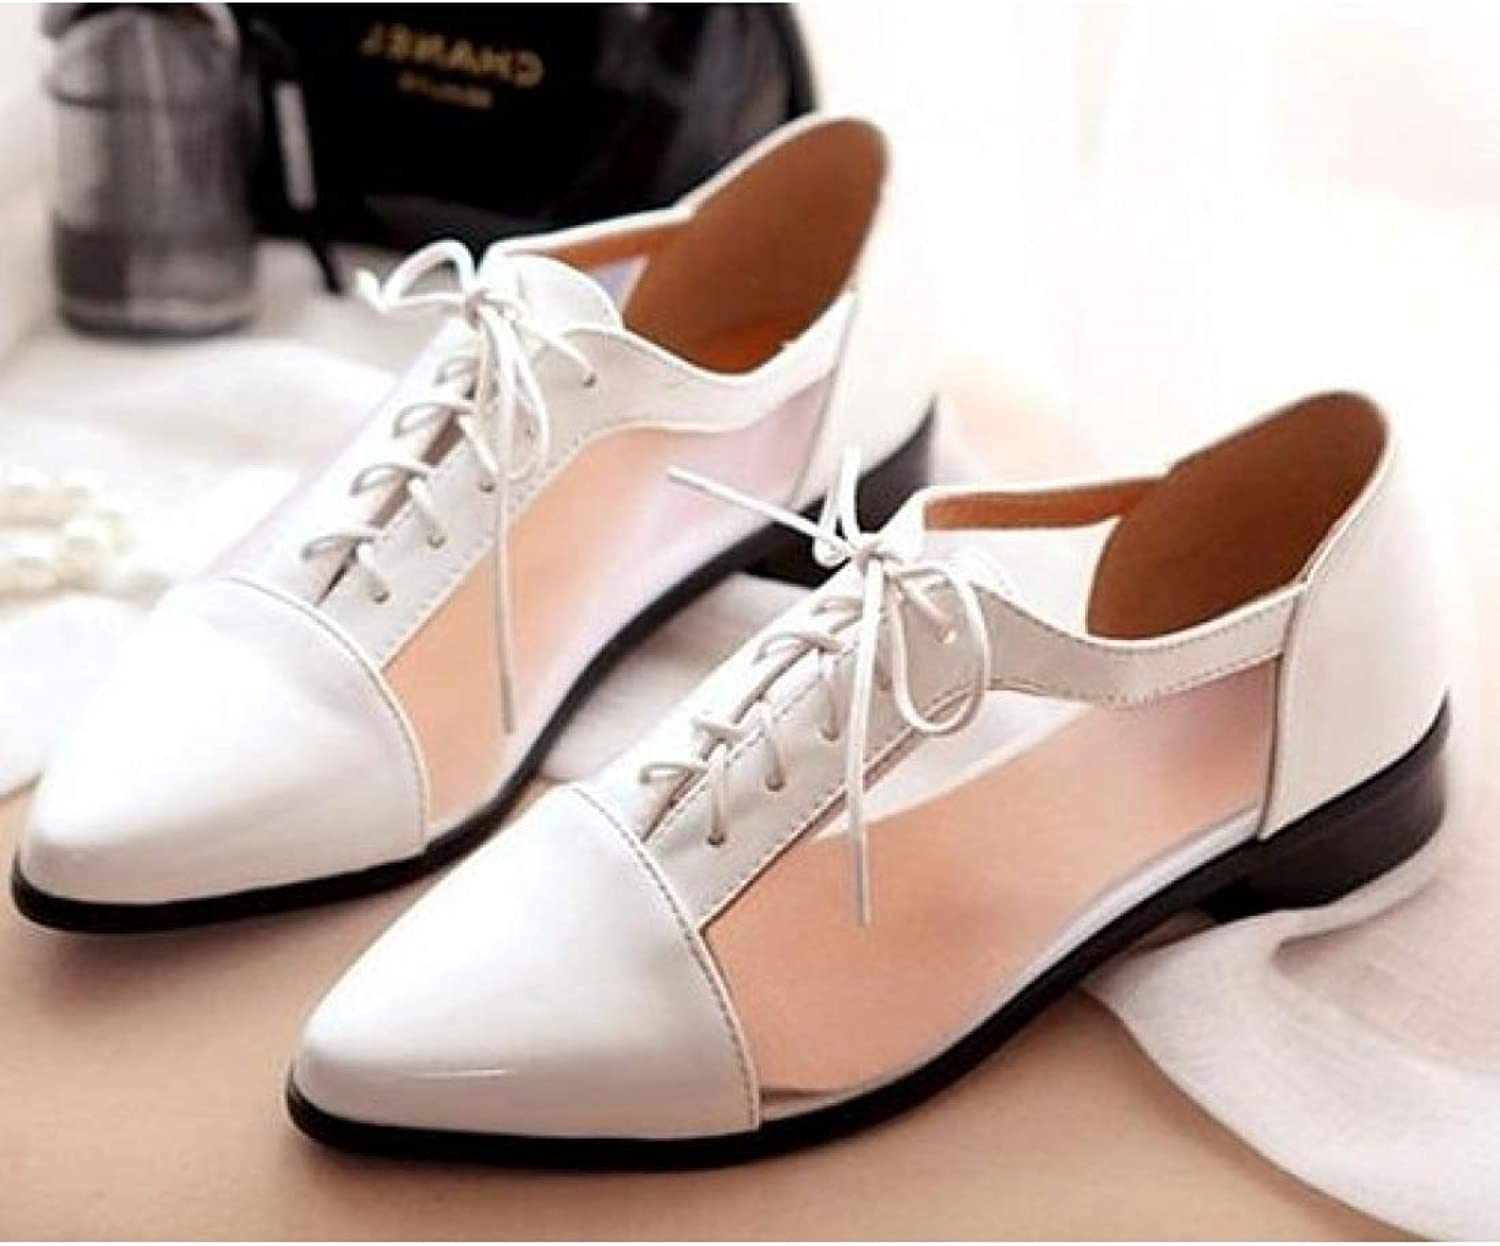 Fay Waters Women's Pointed Toe Cutout Fashion Flat shoes Patent Leather Lace Up Oxfords